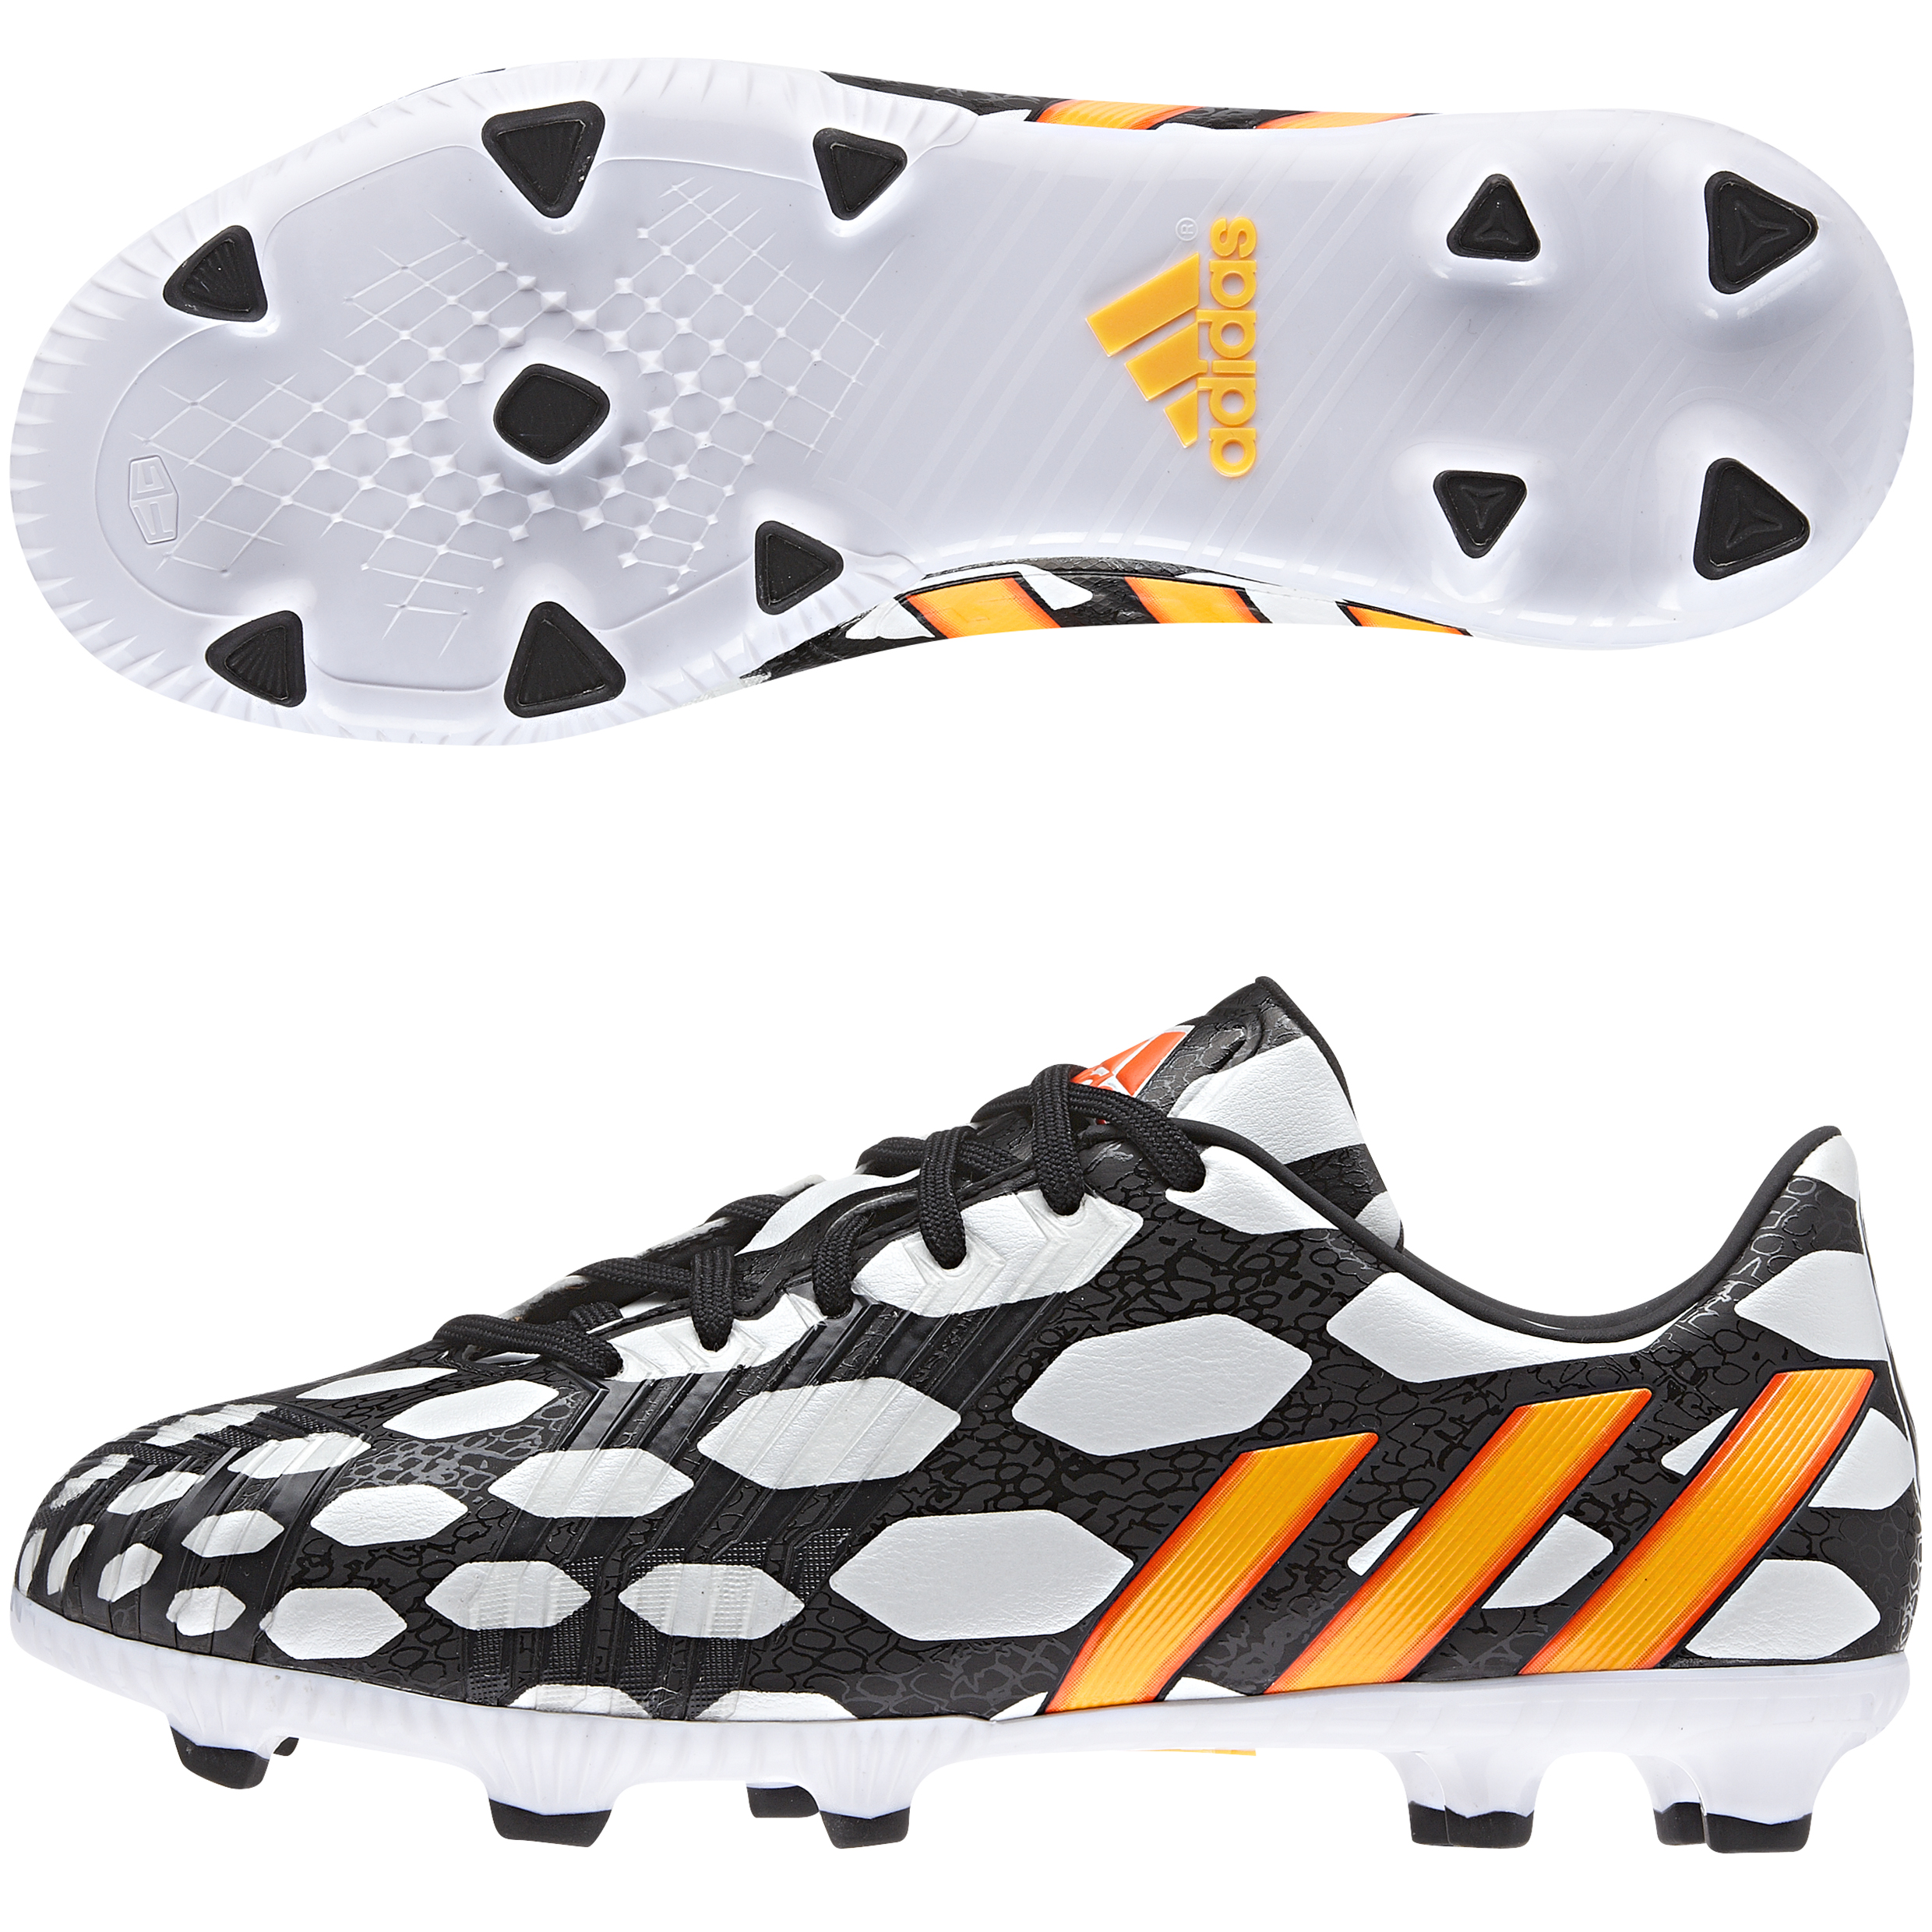 Adidas Predator Absolado LZ World Cup 2014 Firm Ground Football Boots  Kids Black